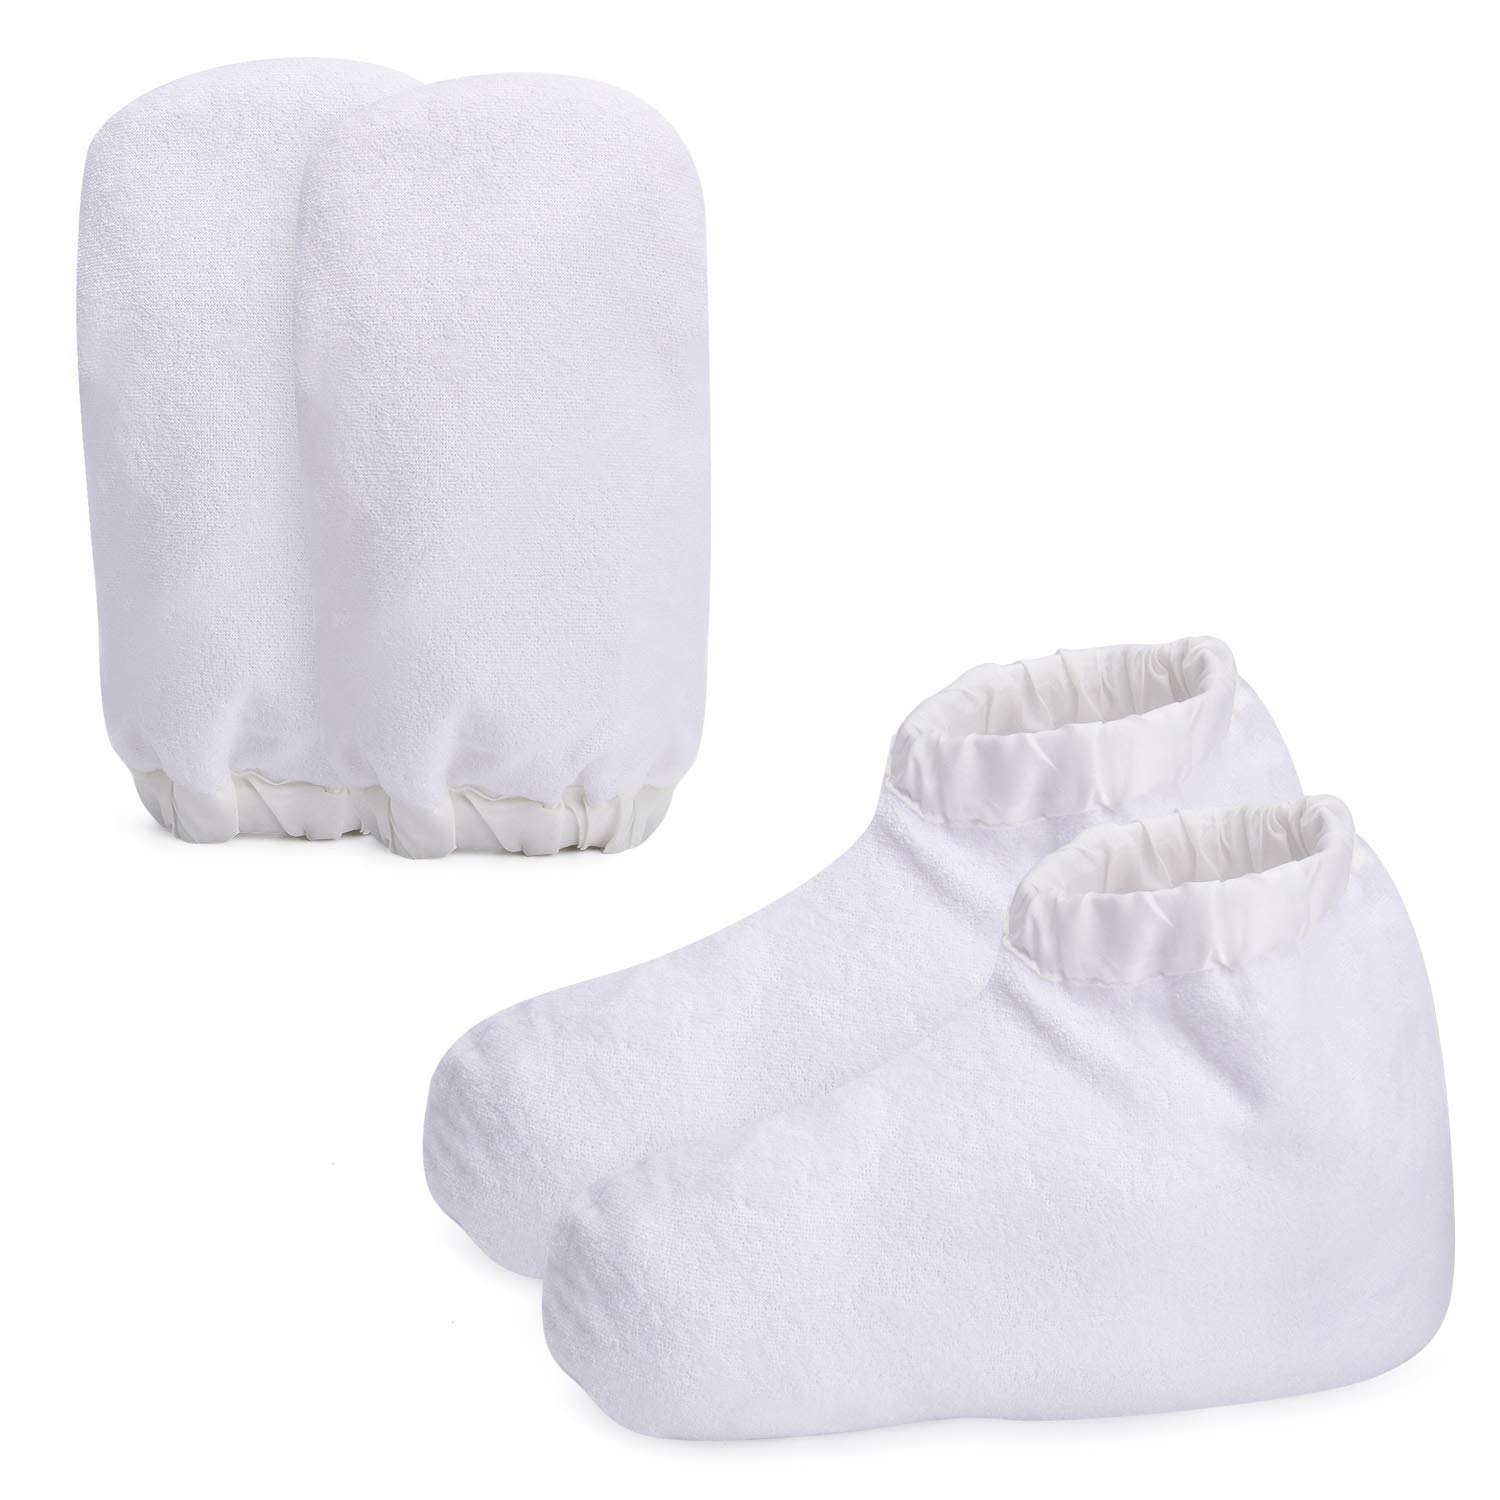 Paraffin Wax Warmer Mittens, Terry Cloth Mitts Booties for Hand Foot Care, Thick SPA Therapy Paraffin Wax Hand Bath Gloves Sock for Heated Manicure Supply - White by Noverlife